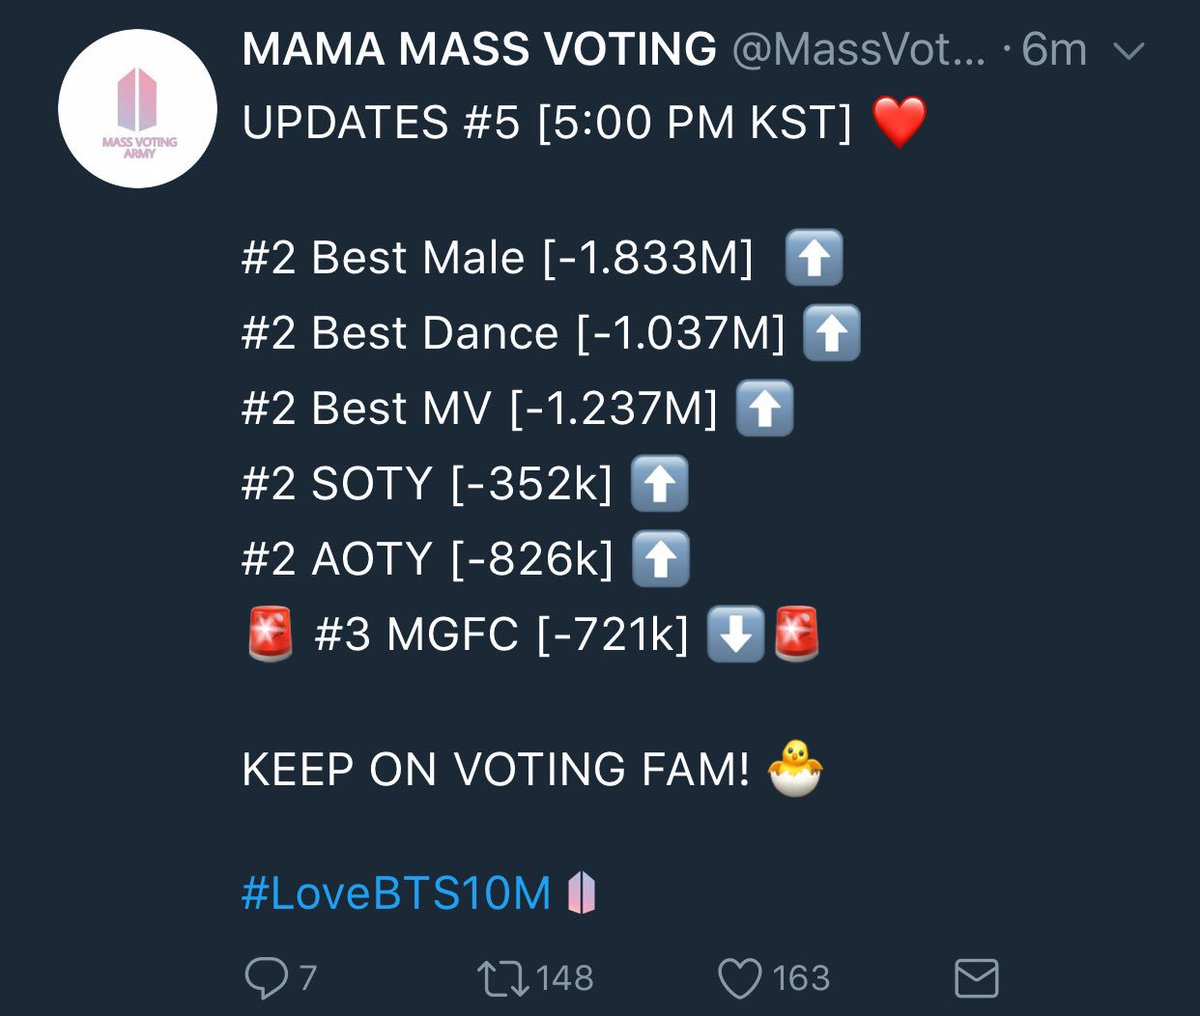 BTSに投票!彼らは勝つべきです  We are doing great armys! Take this as a motivation! We can do this fam<3  Anything for @BTS_twt   #WhereisBangtan #TeamBTS pic.twitter.com/vjOLPn4Nps